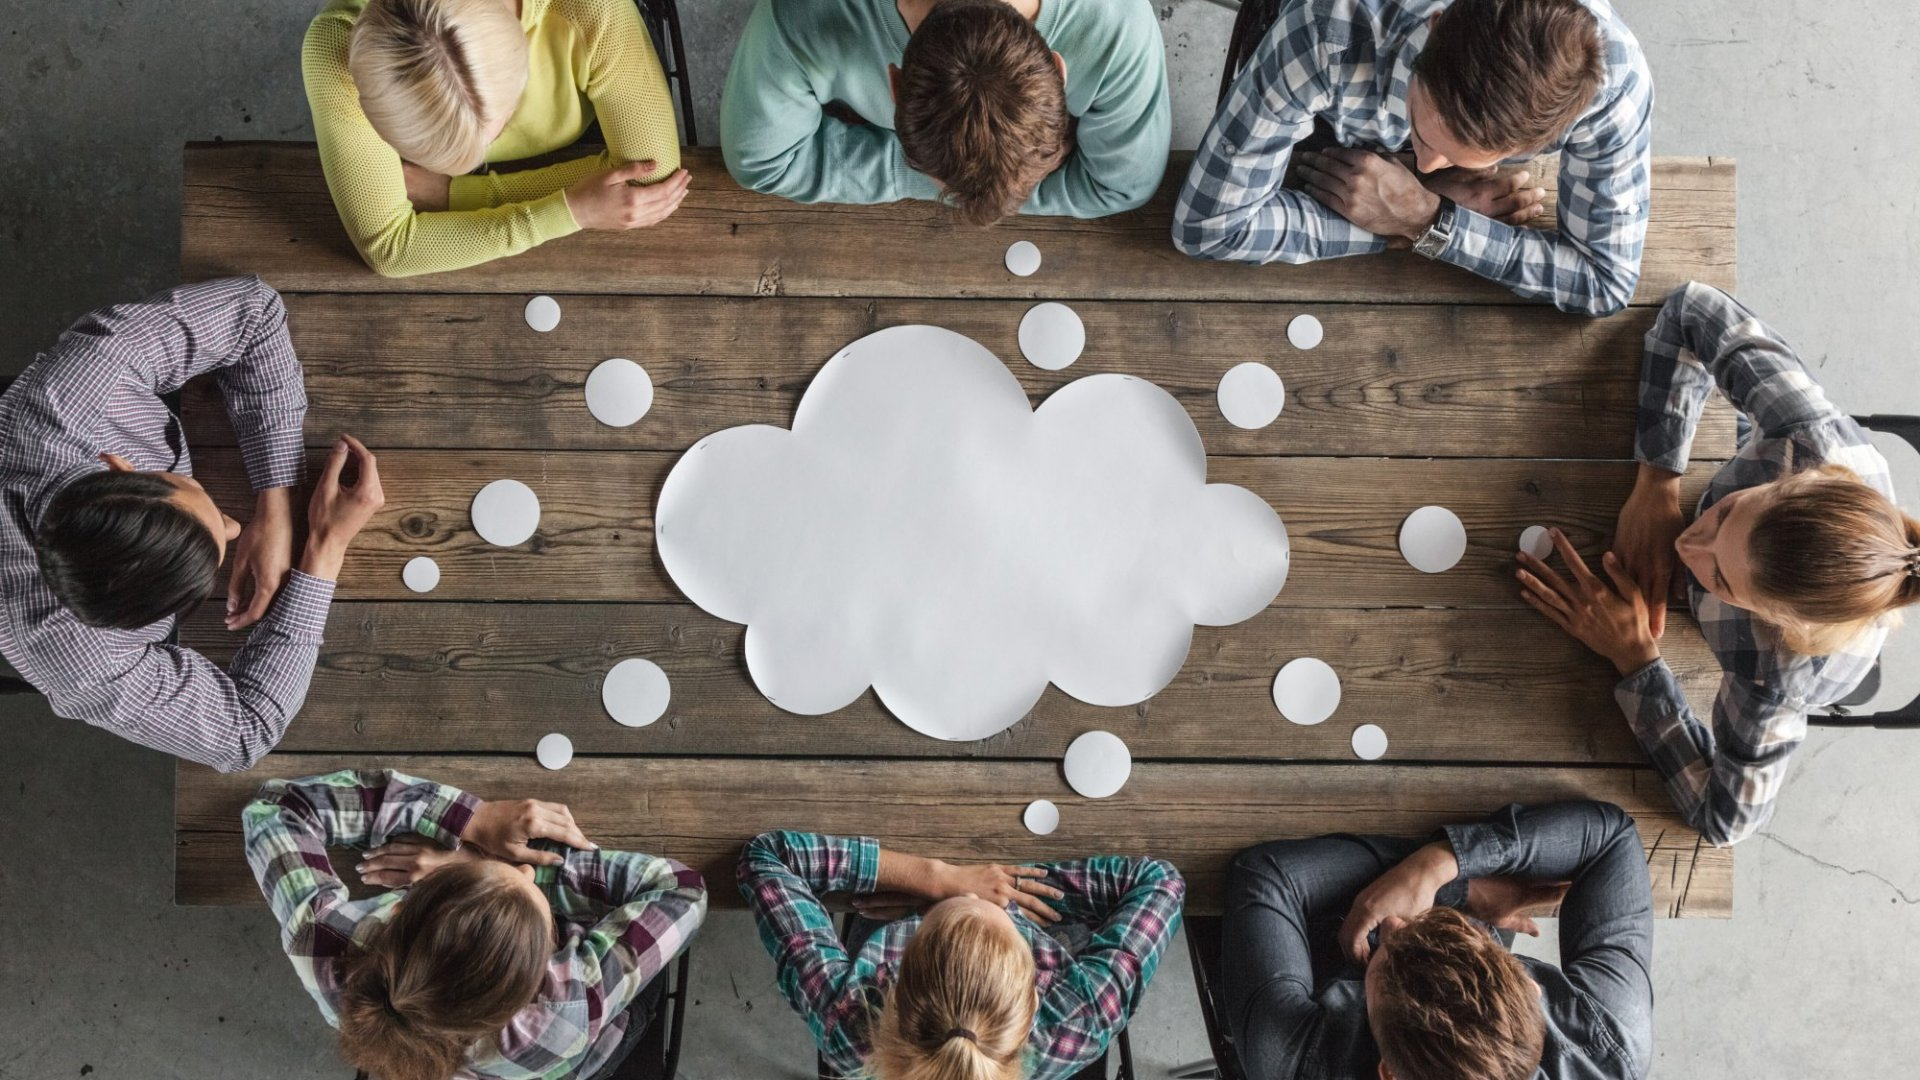 How Using a Cloud Provider Can Make Your Company's Growth Skyrocket